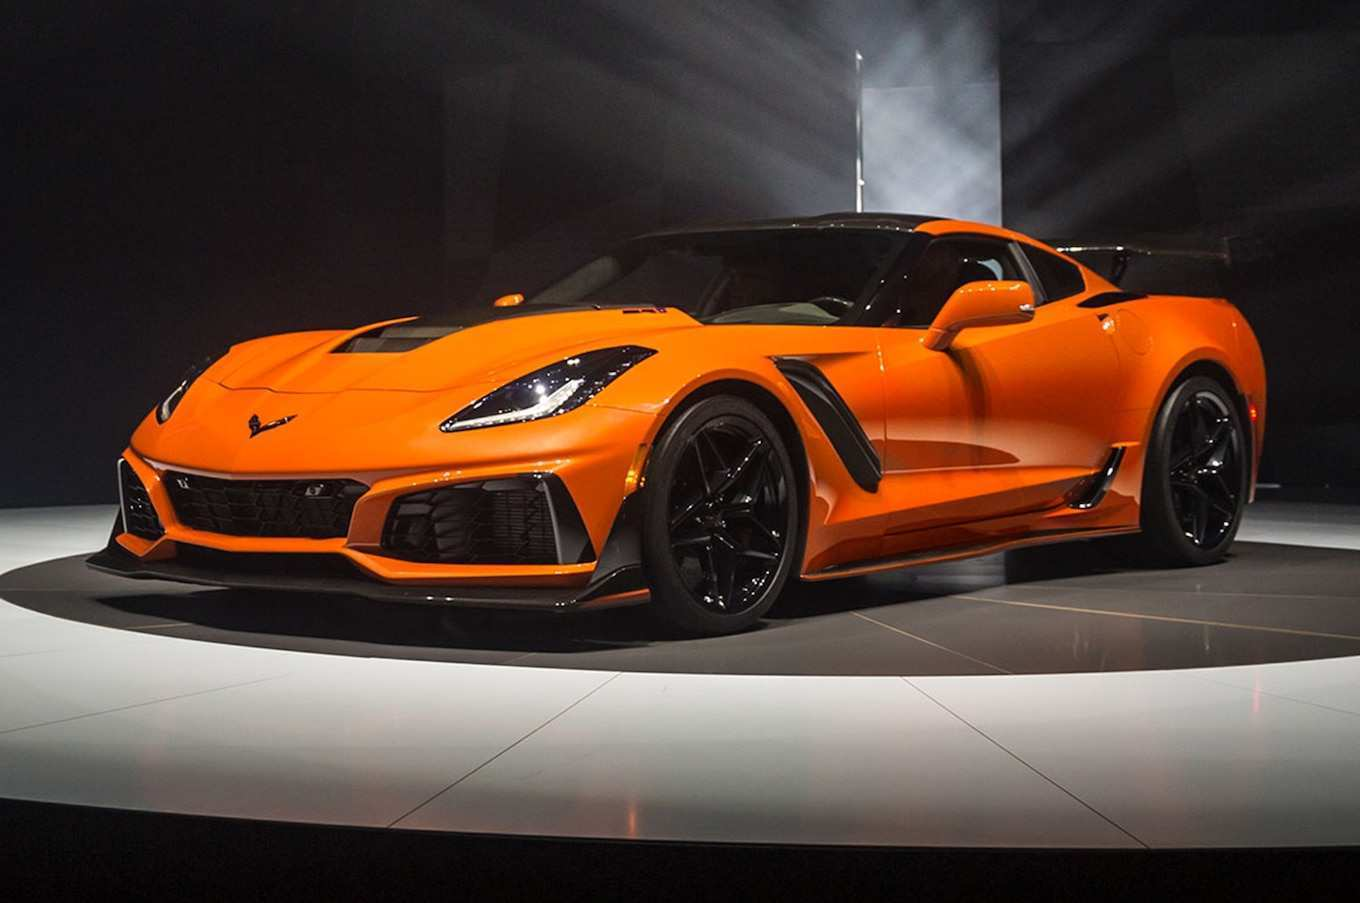 29 All New 2019 Chevrolet Corvette Price Release Date And Concept